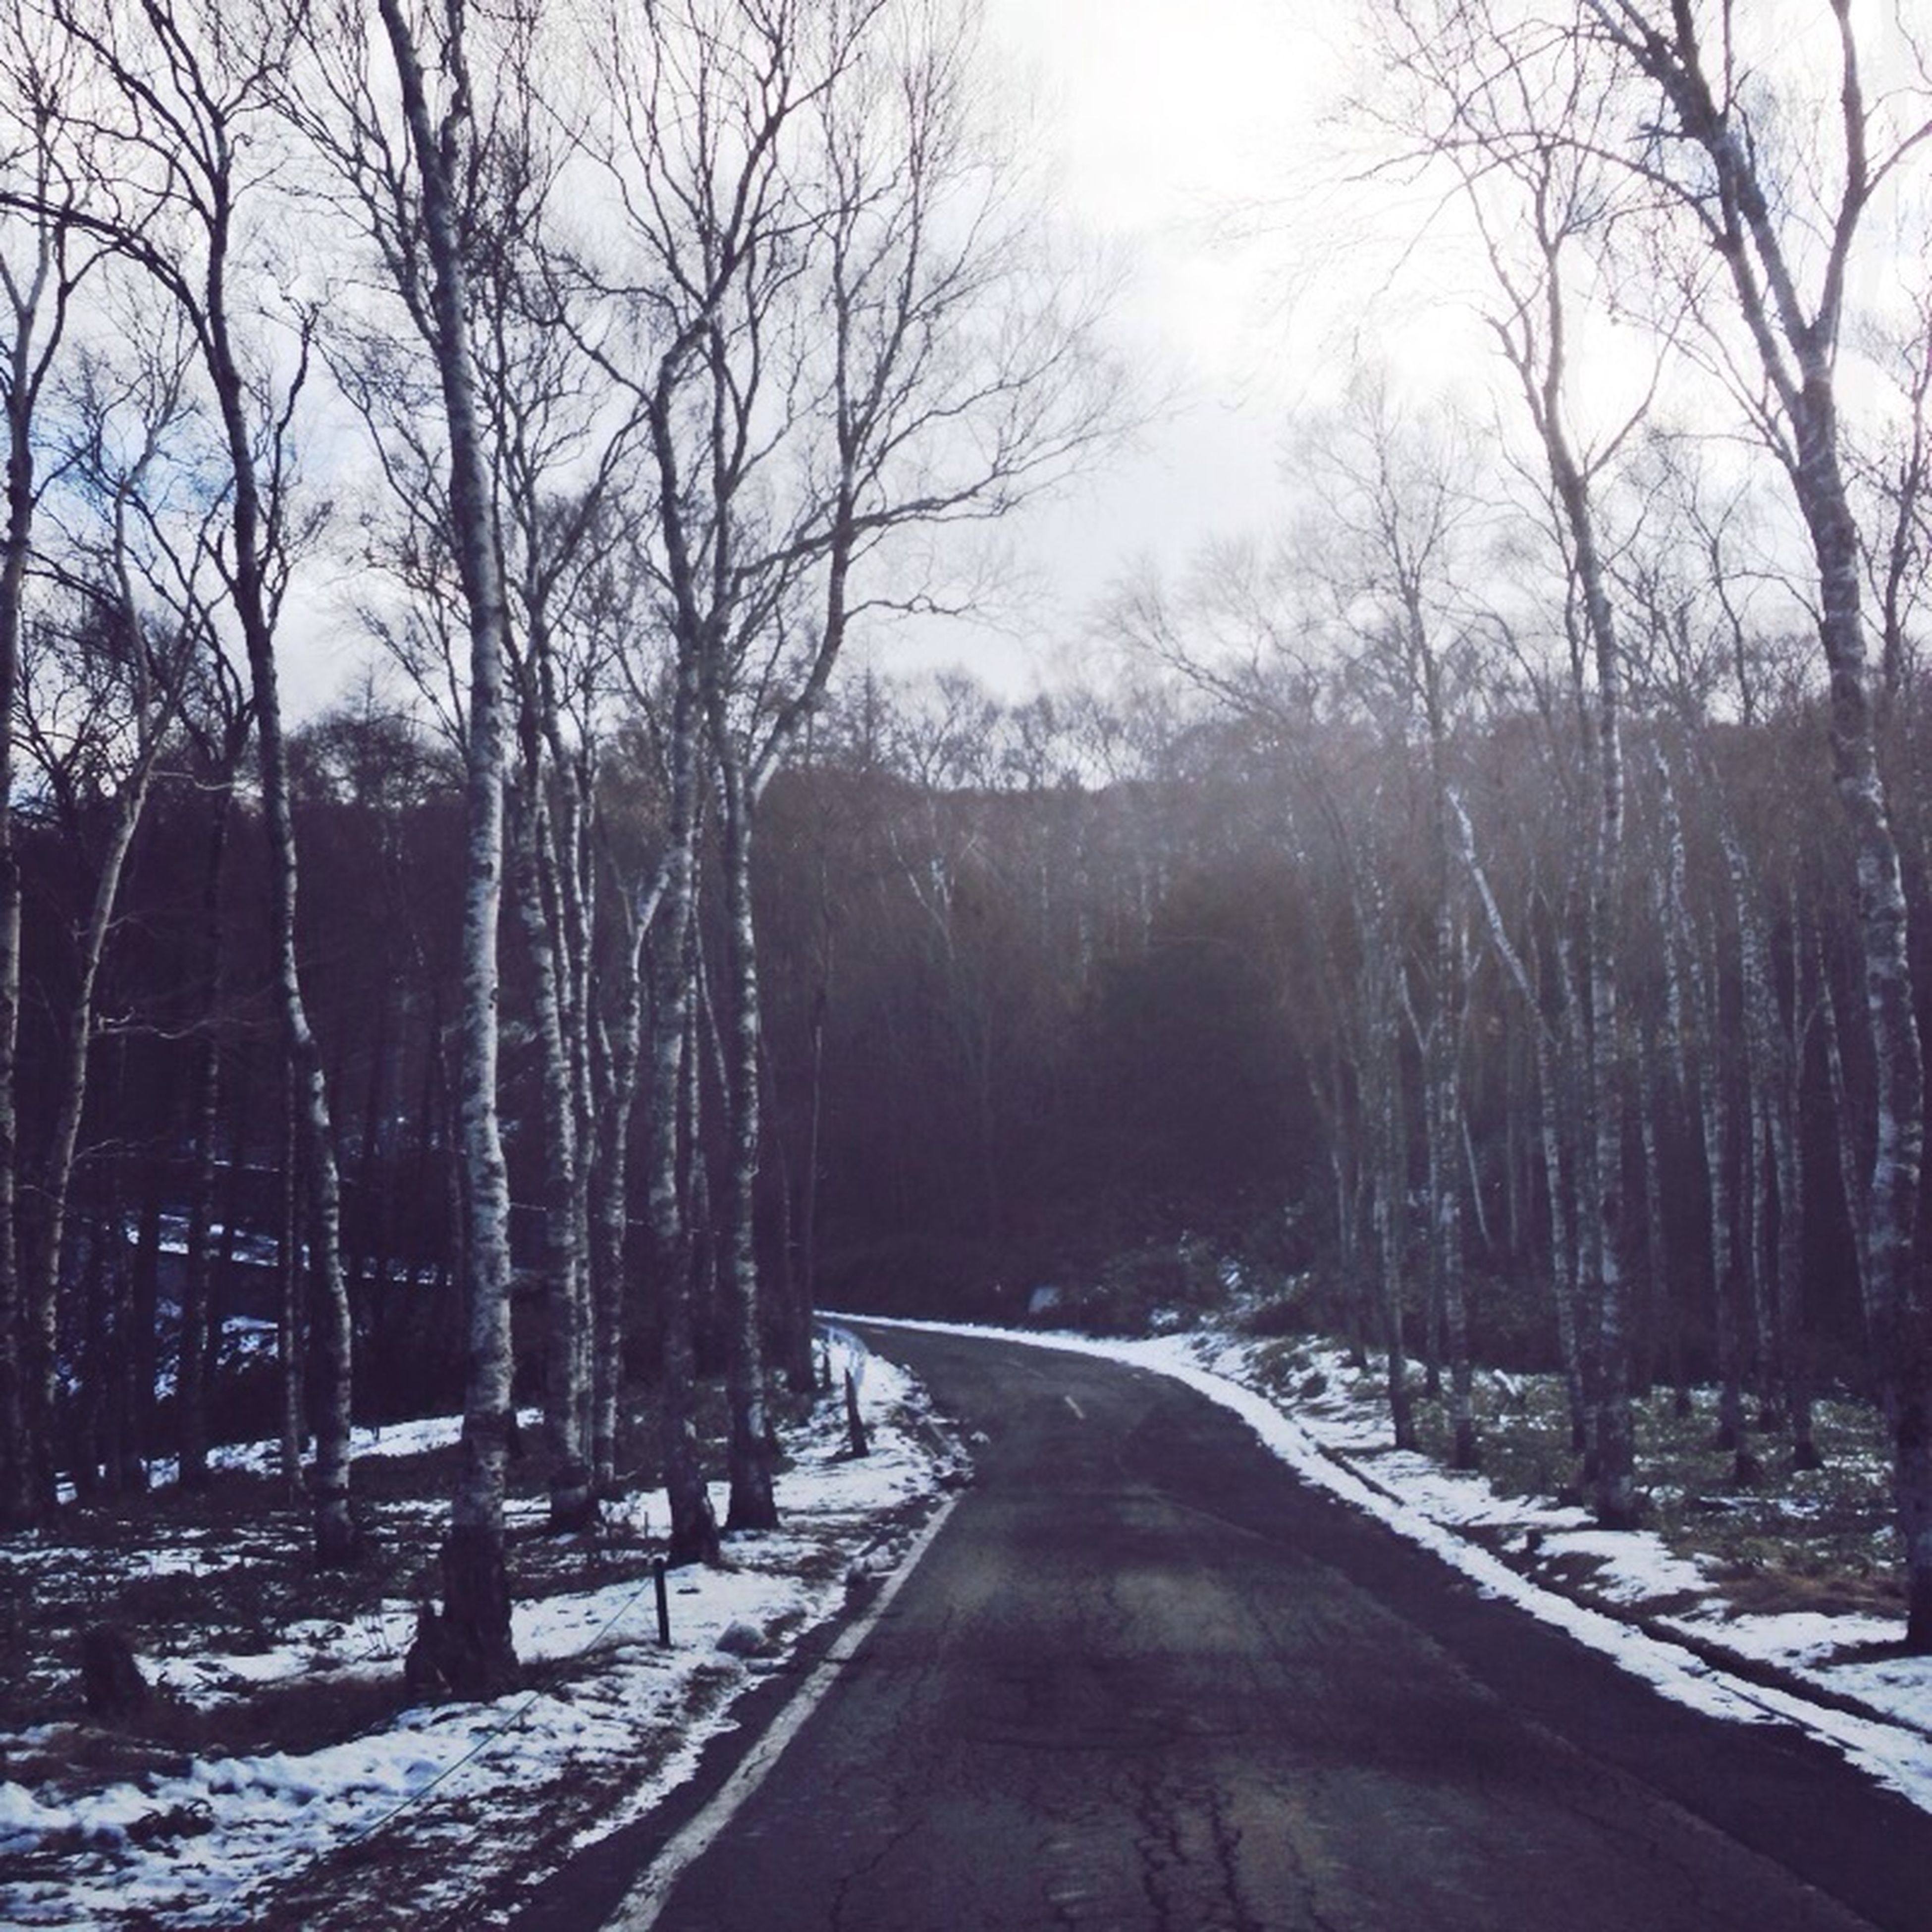 snow, winter, cold temperature, the way forward, bare tree, season, tree, weather, diminishing perspective, vanishing point, road, tranquility, covering, tranquil scene, nature, transportation, frozen, beauty in nature, scenics, branch